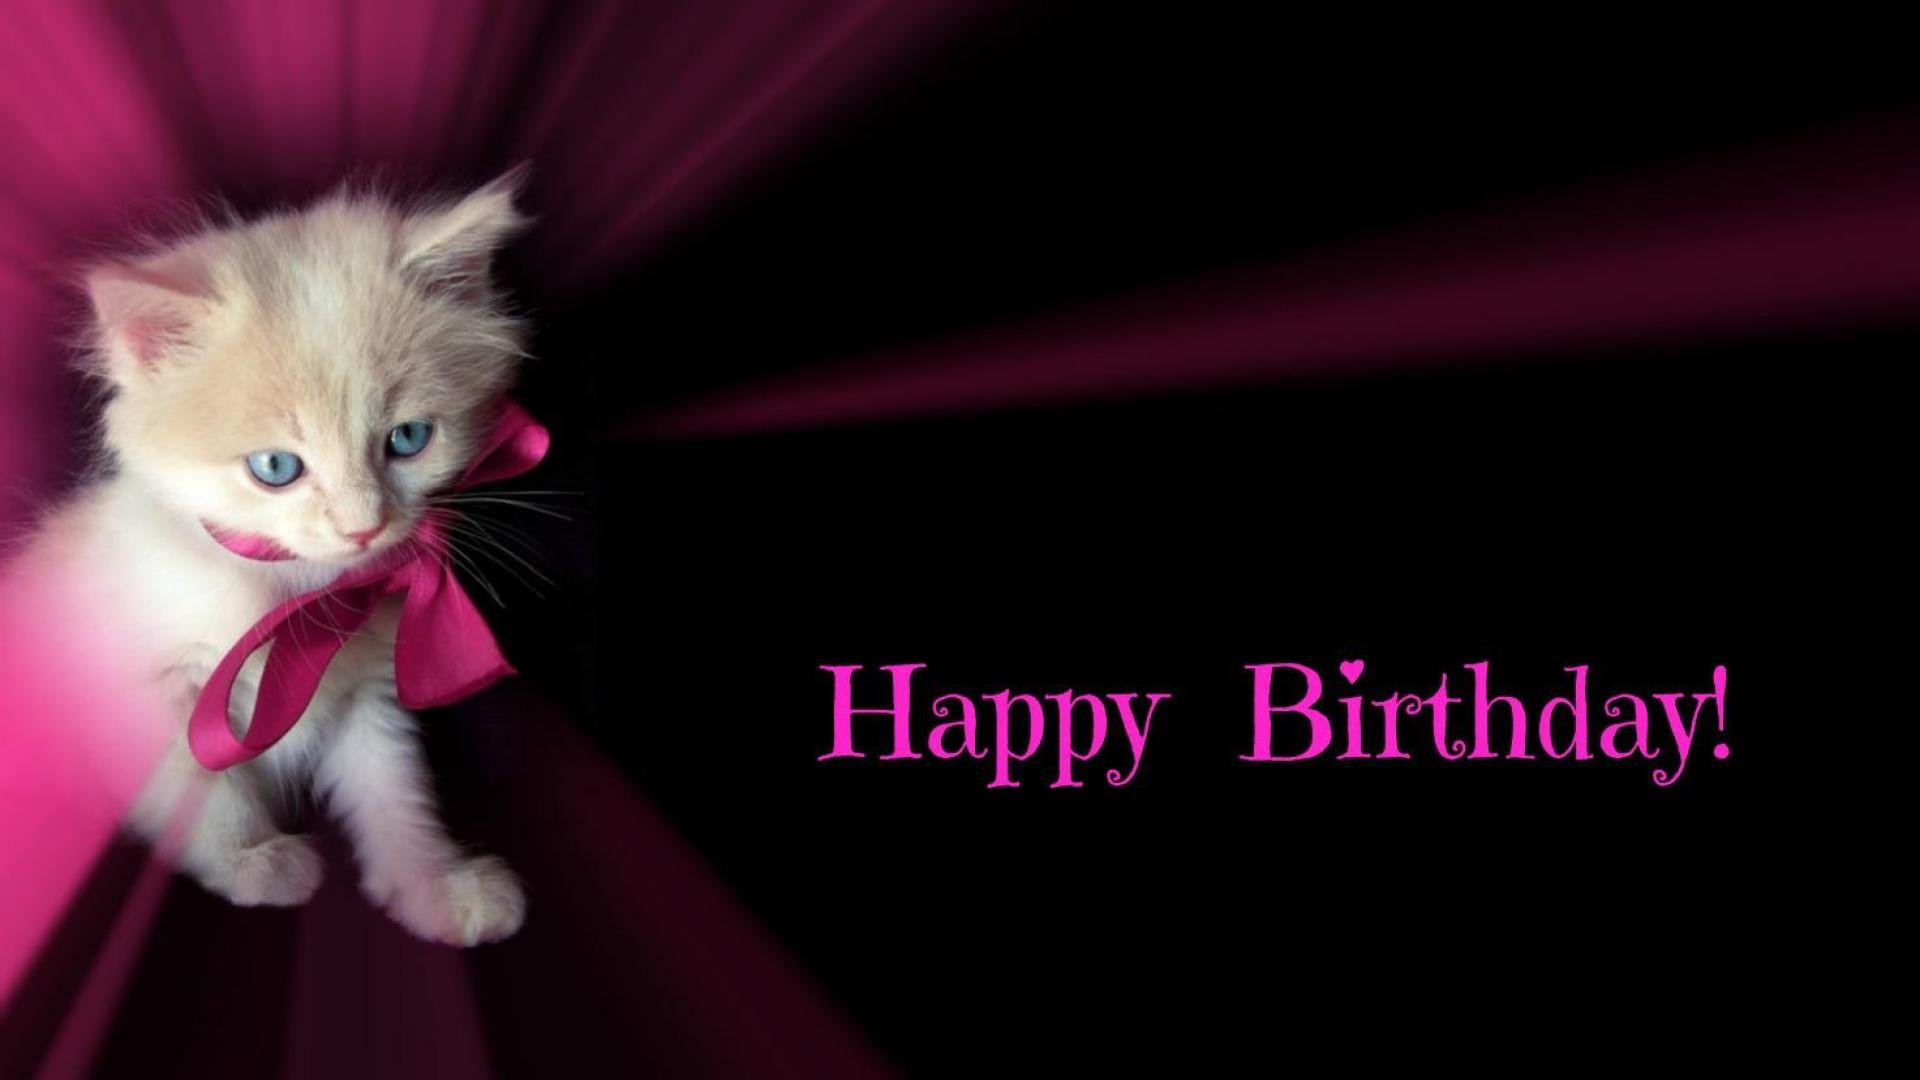 Happy Birthday Cat Wallpaper